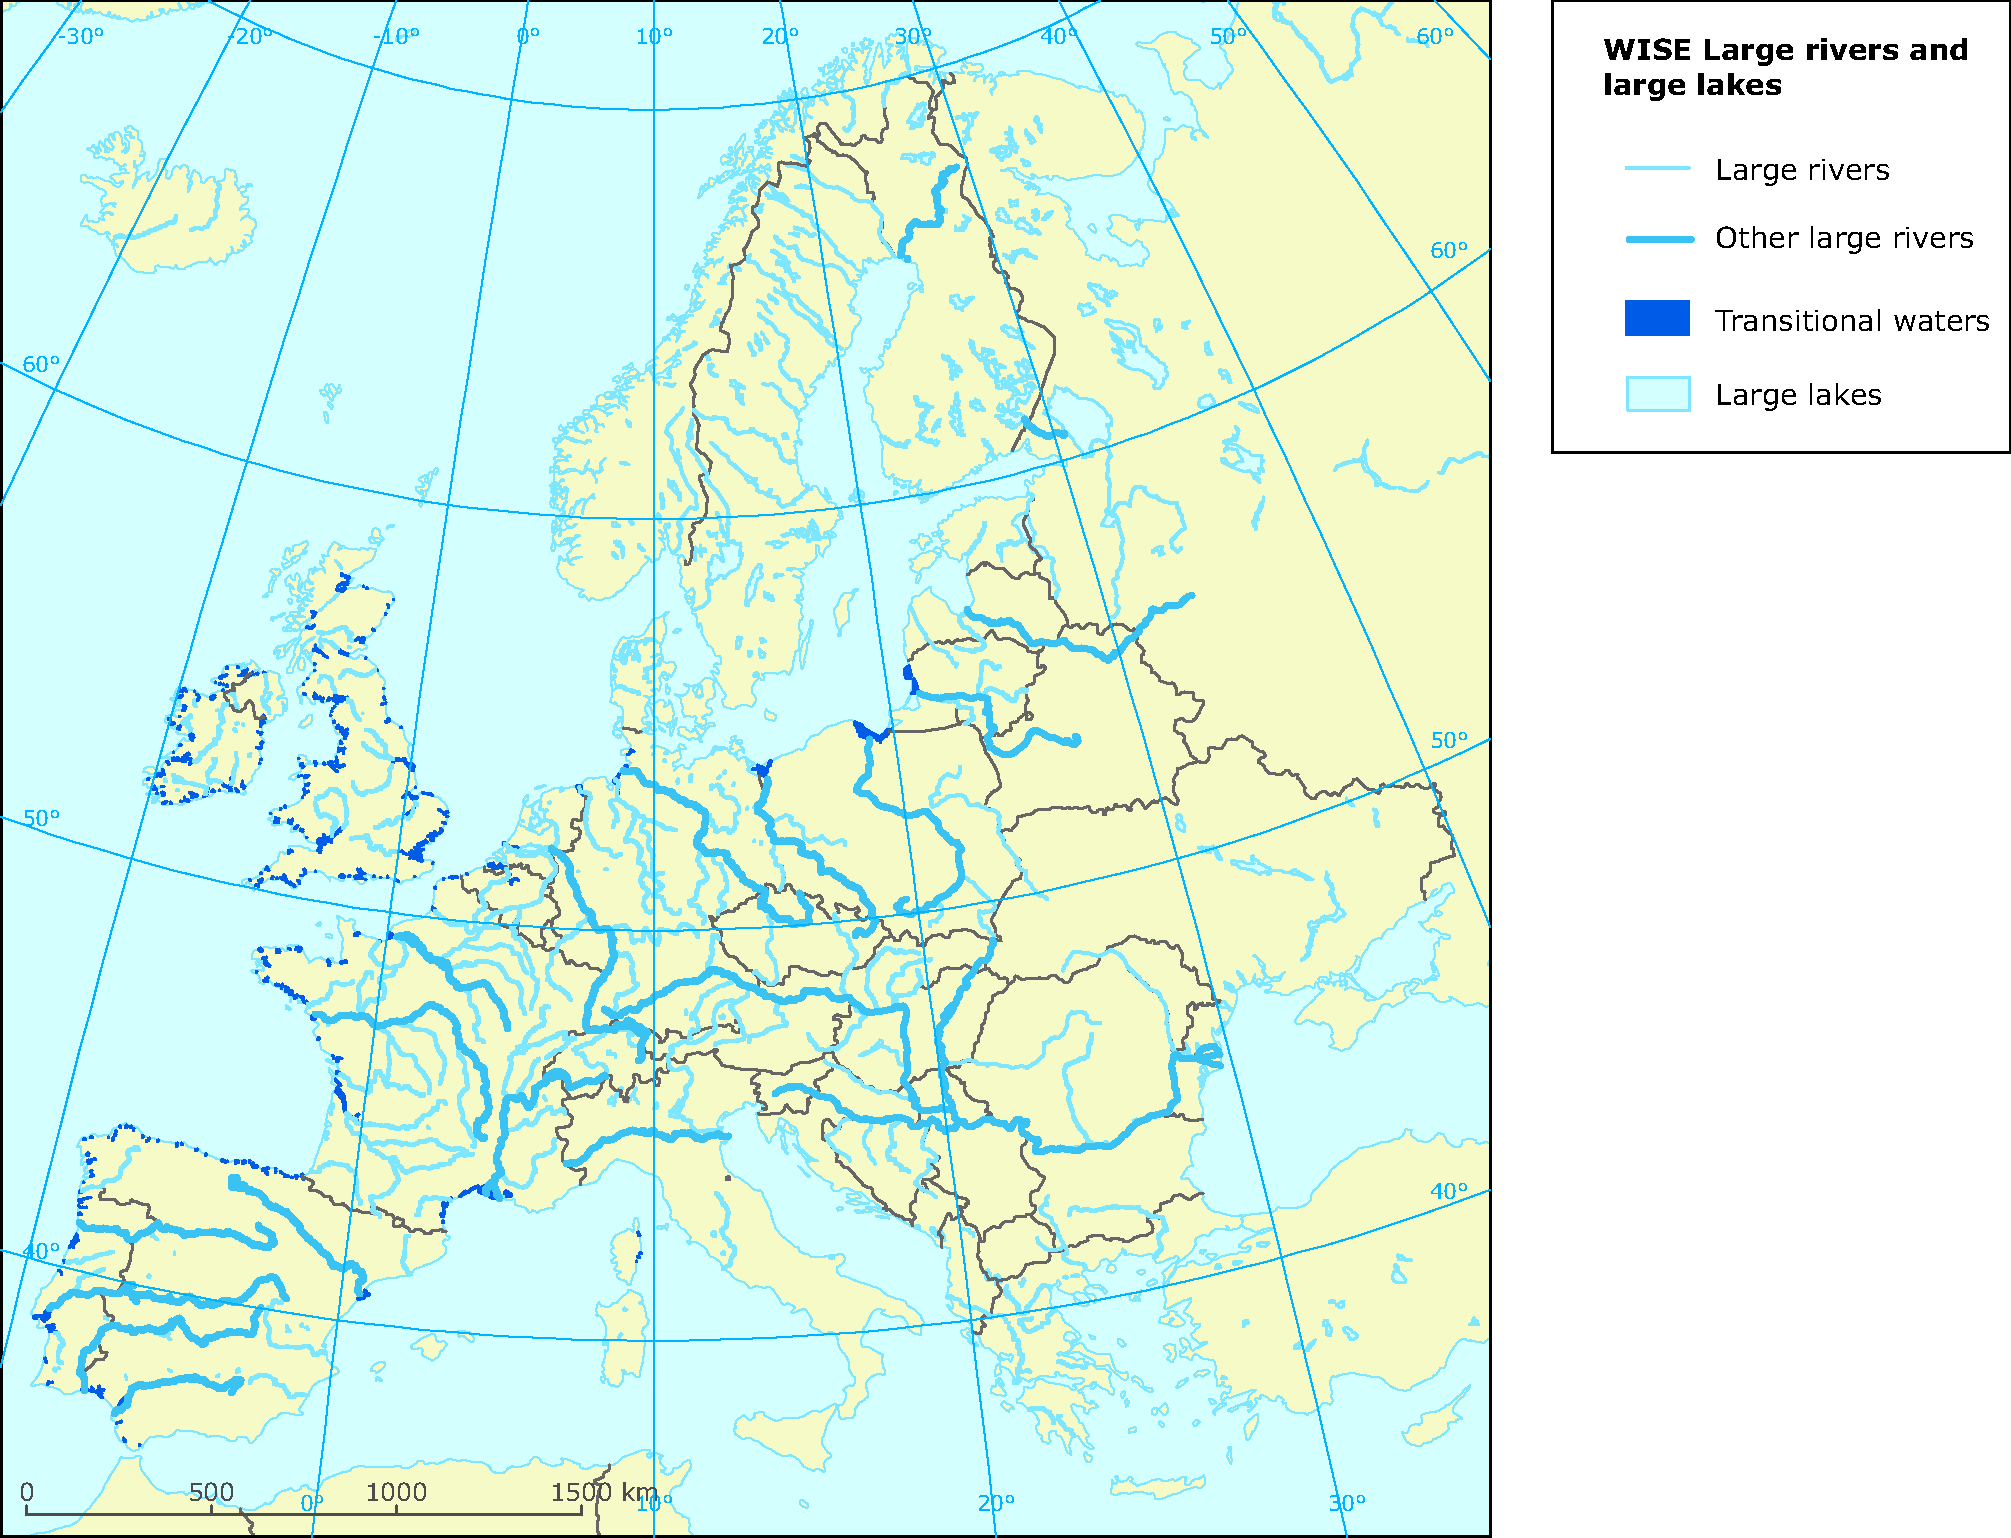 Rivers Map Europe.Wise Large Rivers And Large Lakes European Environment Agency